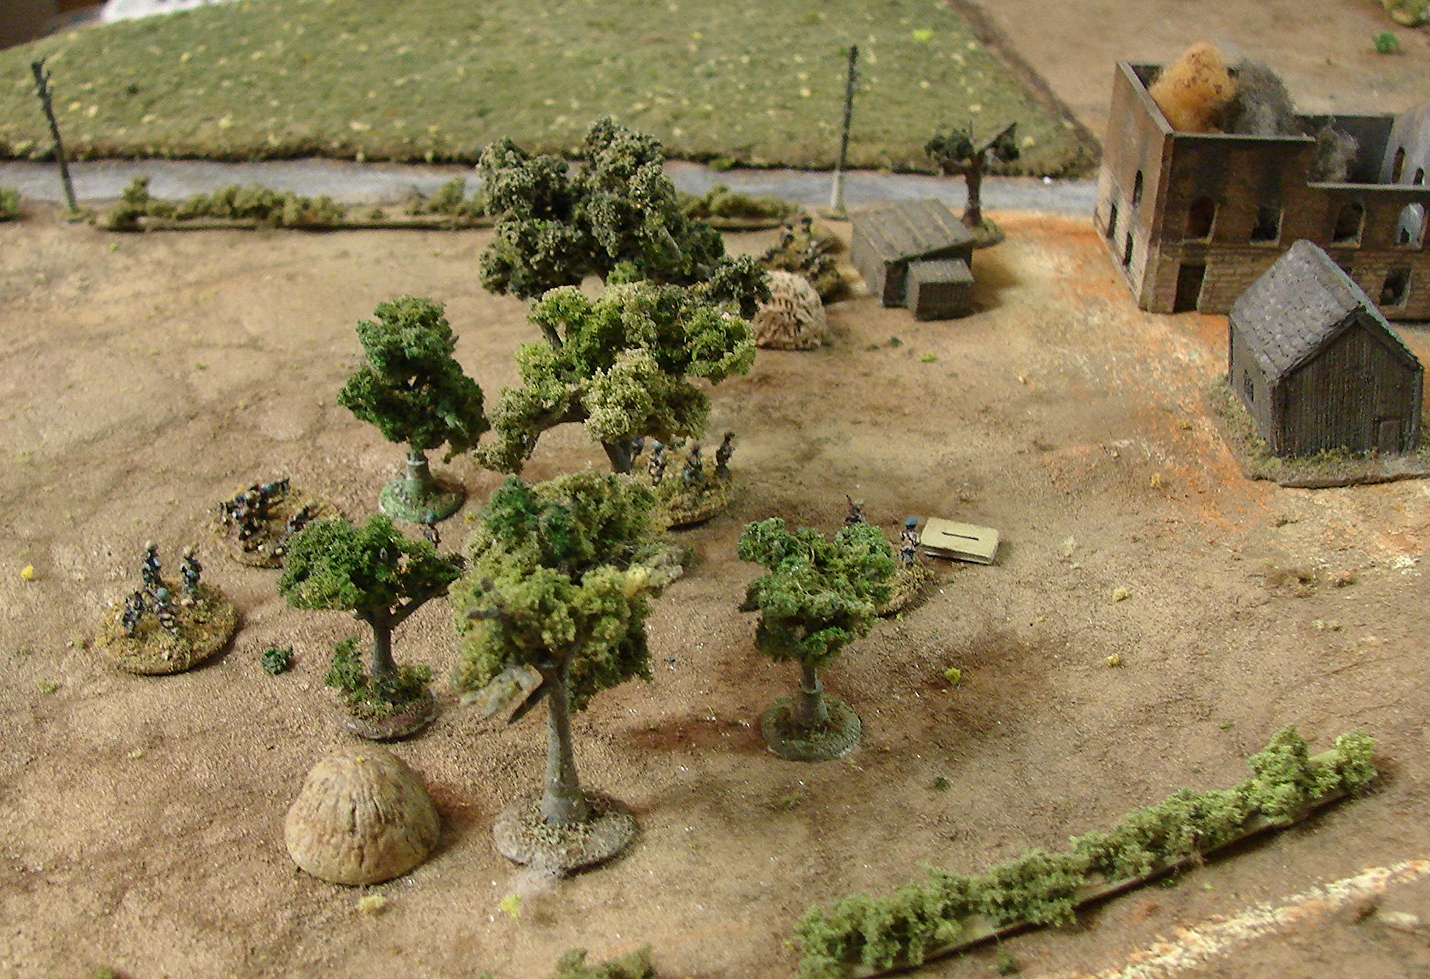 Ongoing Firefight